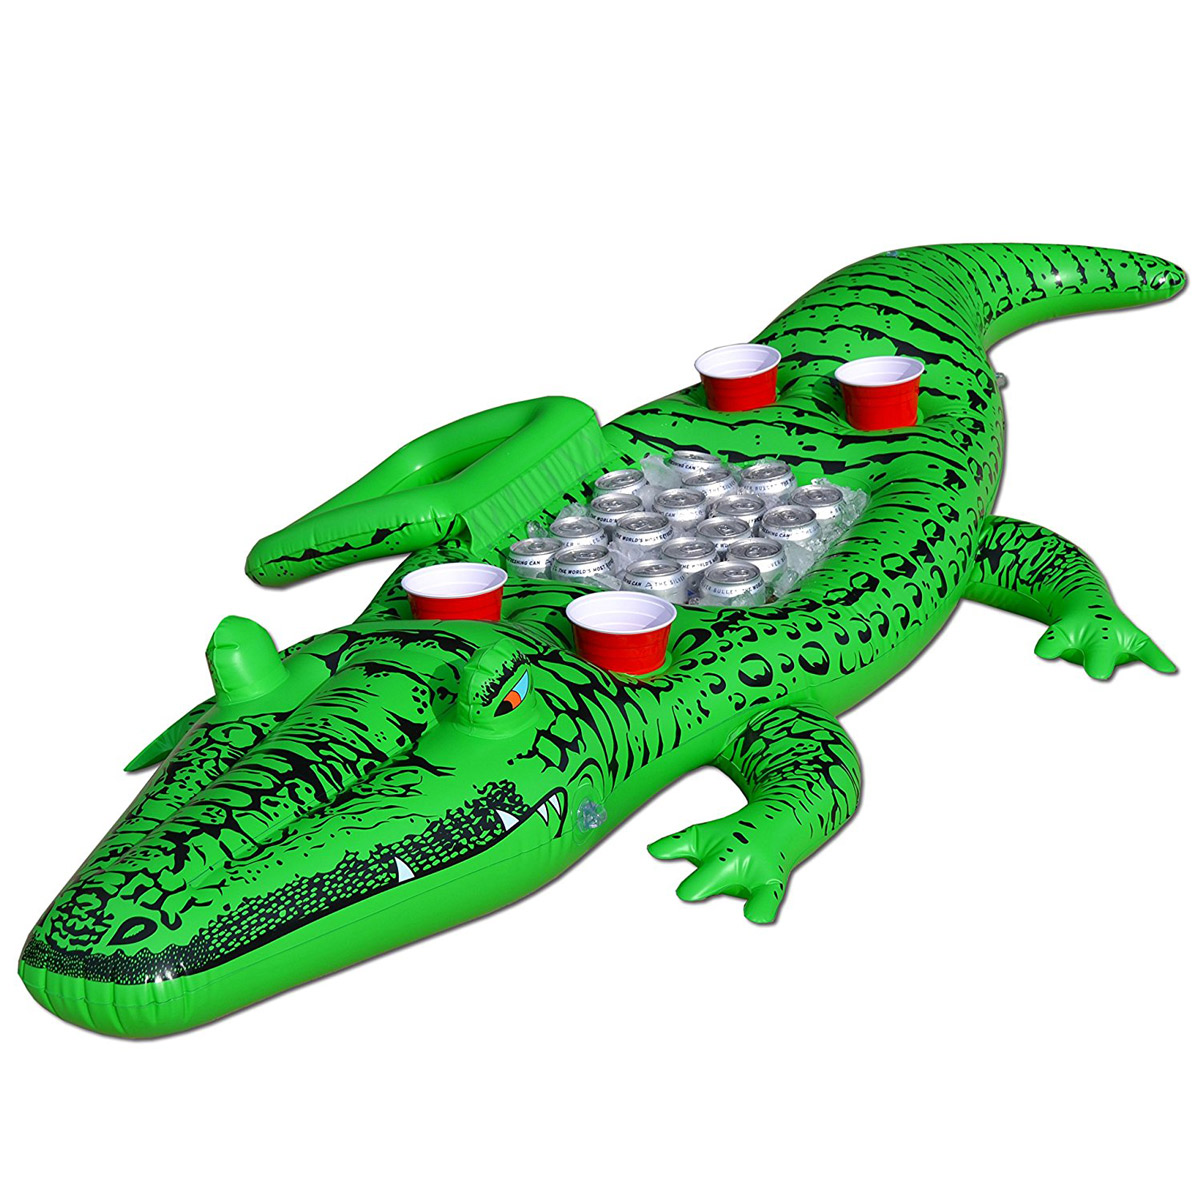 Party Gator Giant Inflatable Alligator W Built In